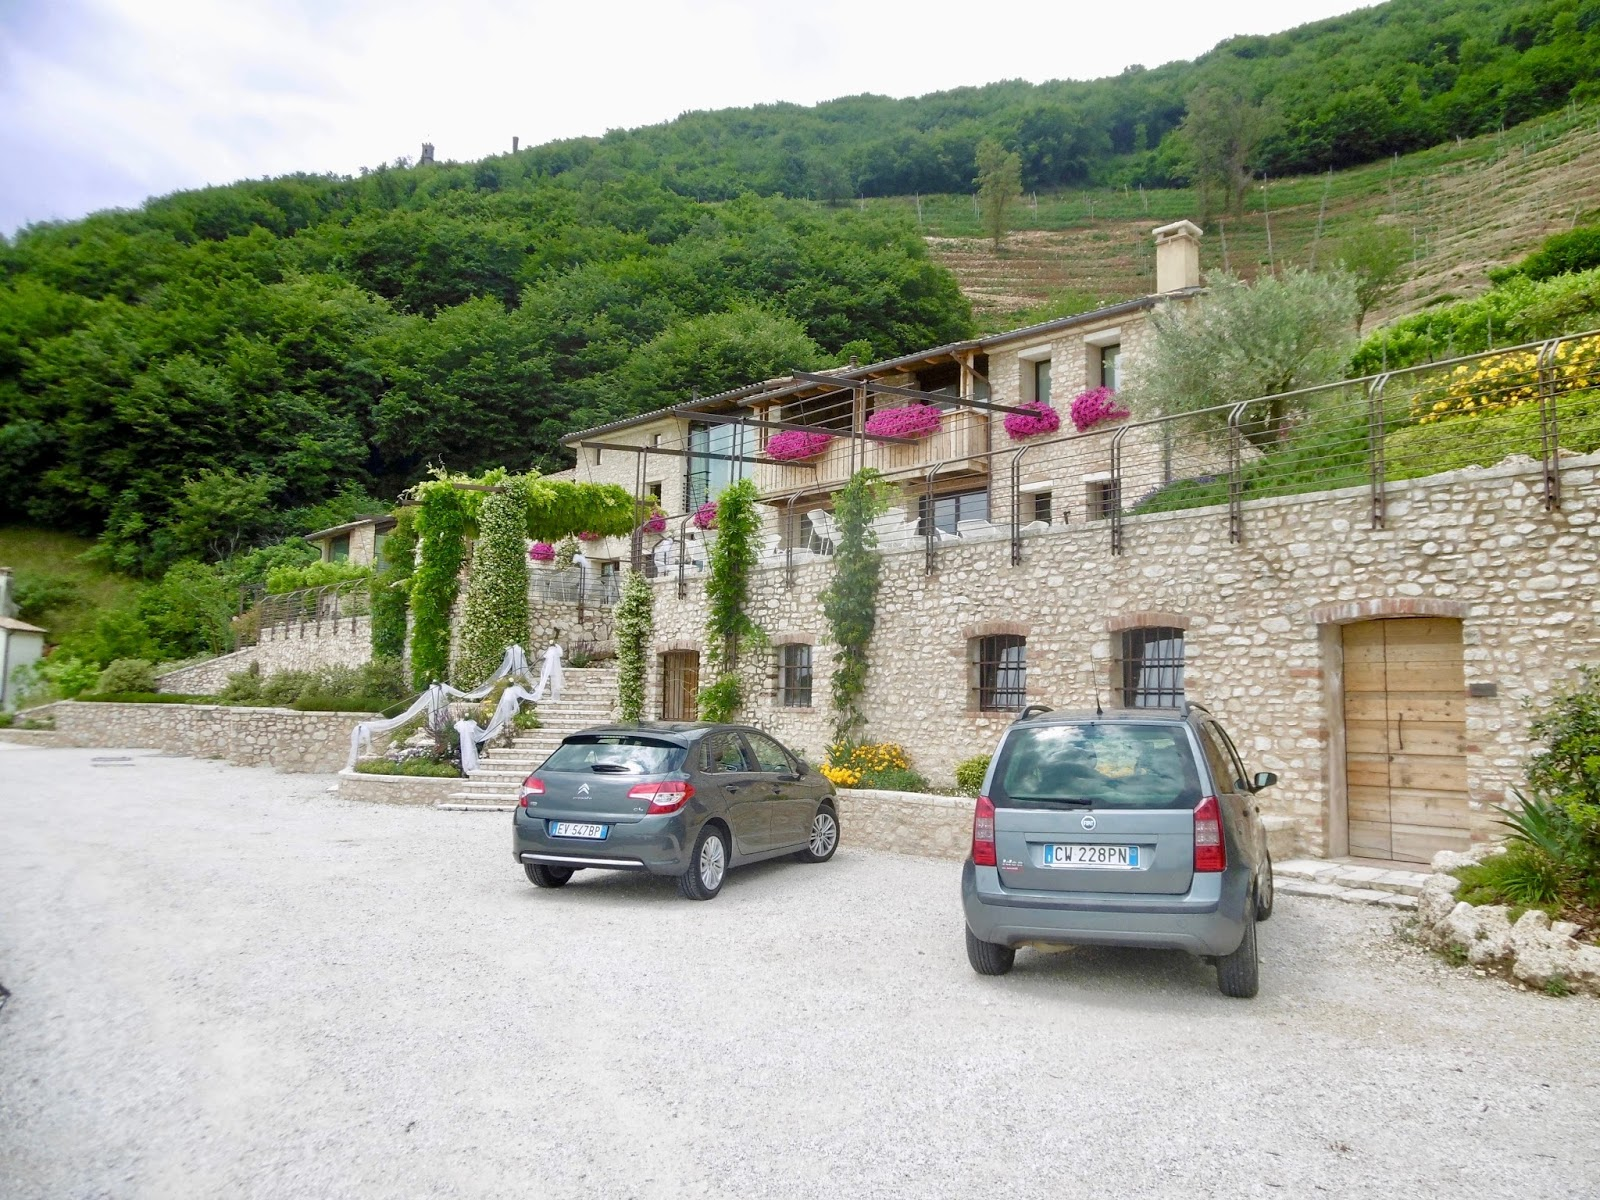 Farmhouse in Valdobbiadene where you can get free bike hire and cycle the prosecco